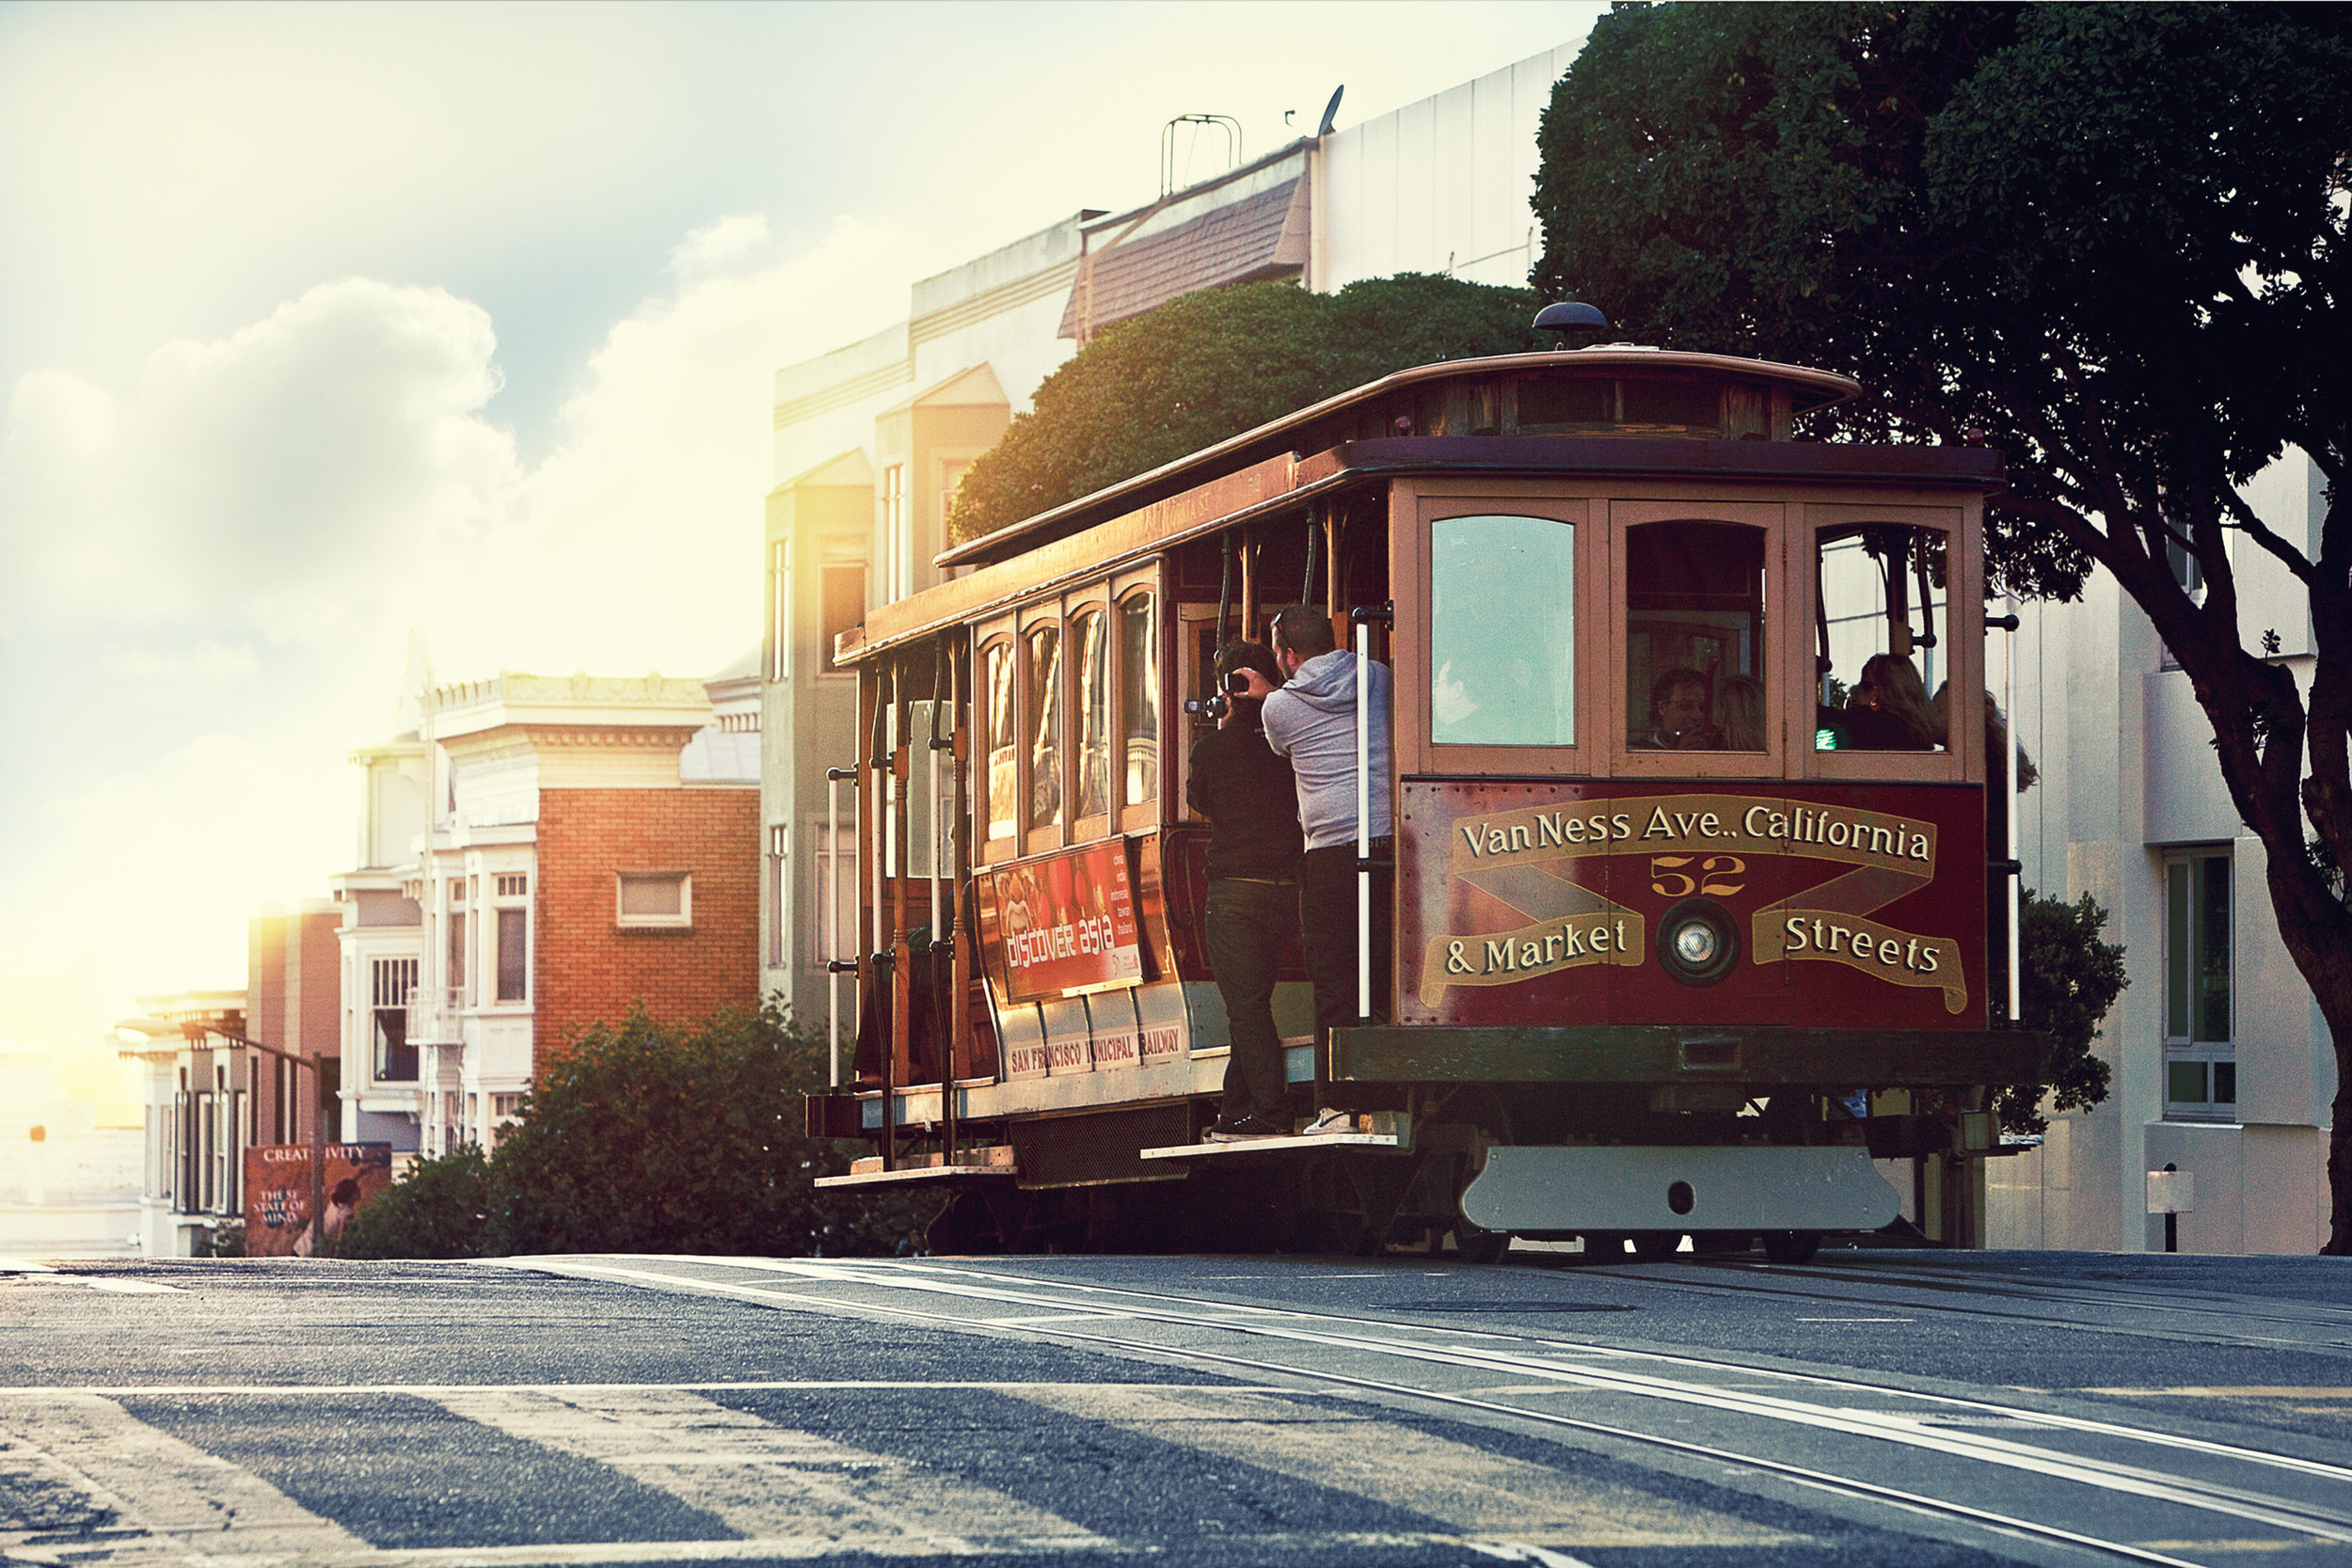 San Francisco cable car (image care of San Francisco Travel).